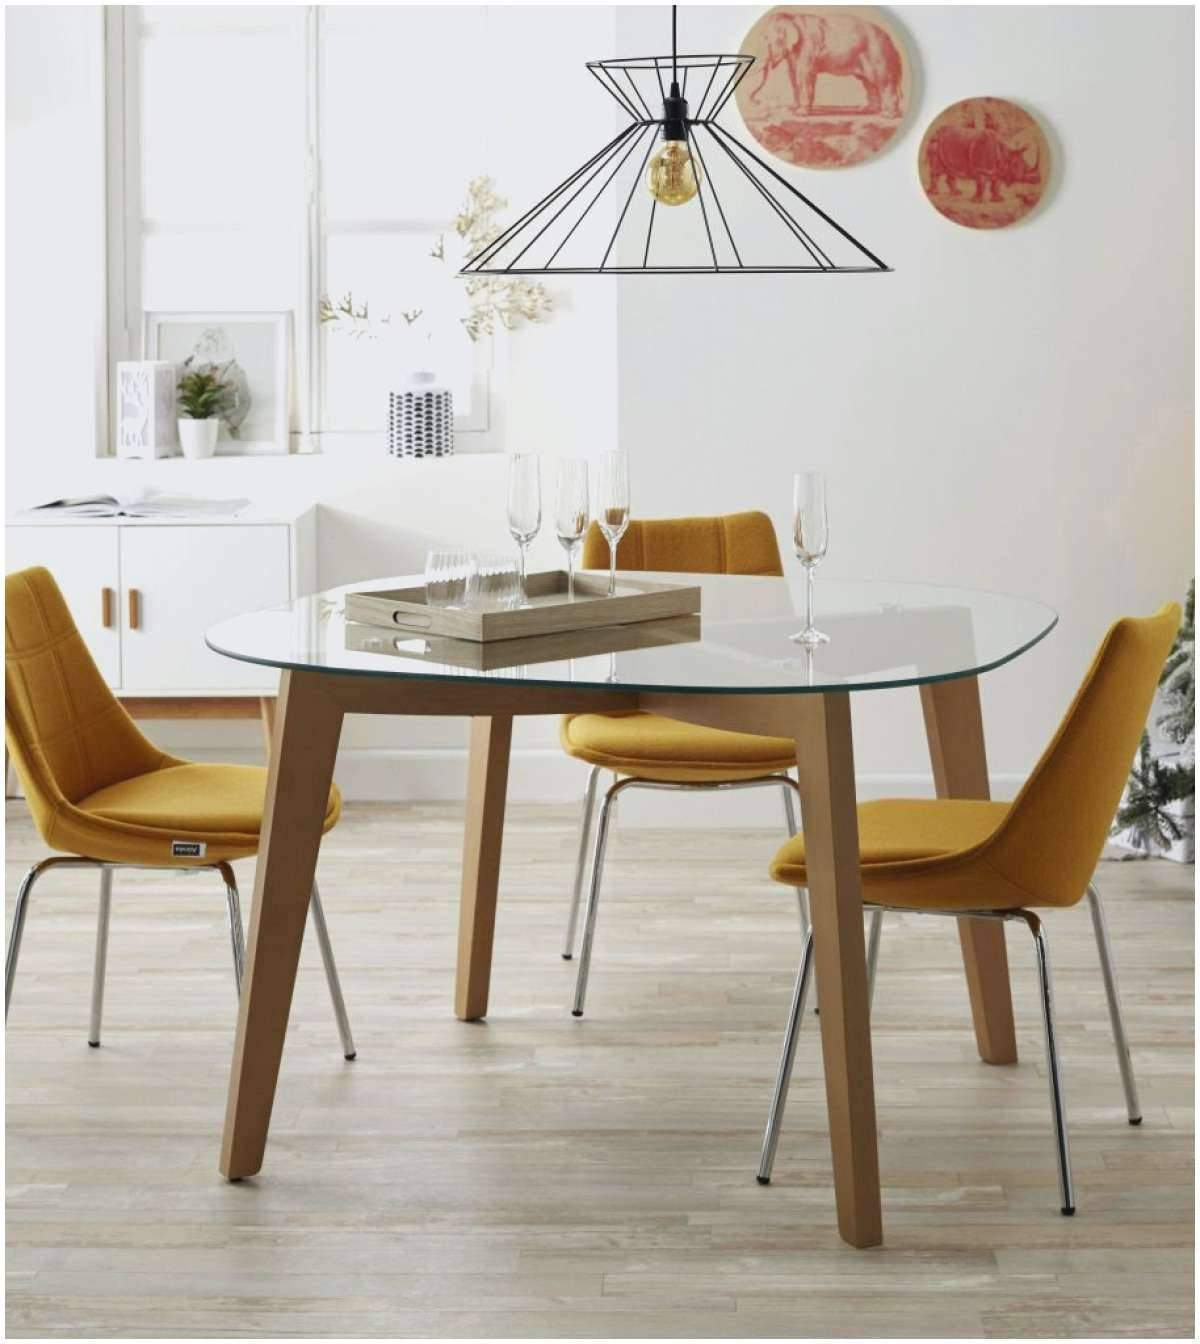 wohnzimmer lampe luxus wohnzimmer lampe industrial style awesome 5 reasons why you of wohnzimmer lampe